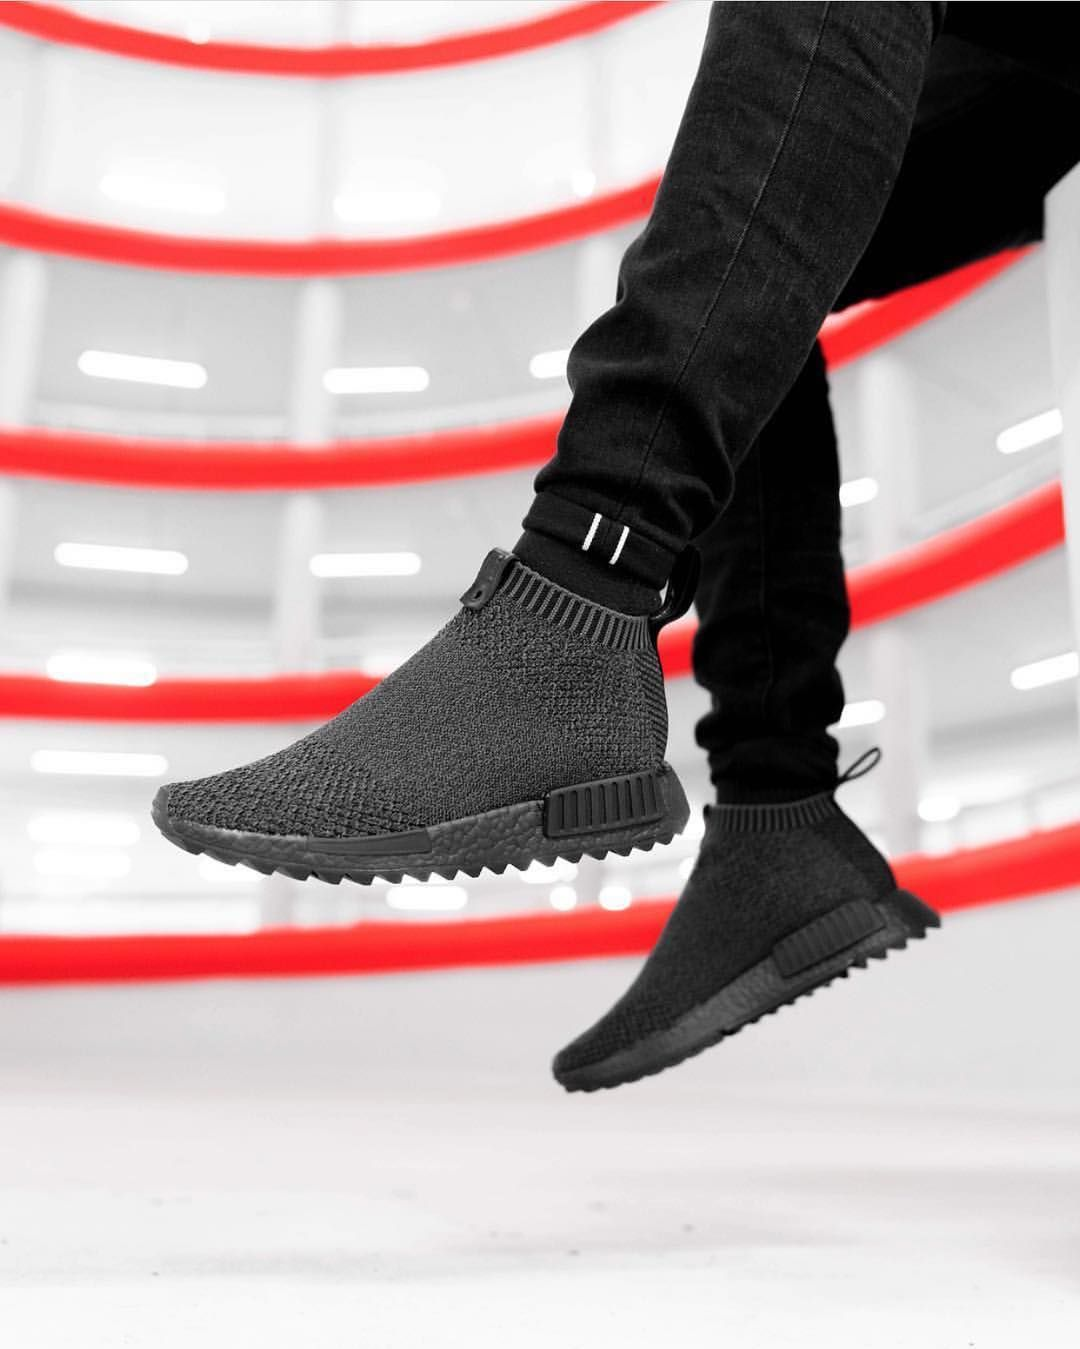 346f310d0b1289 Adidas Consortium x The Good Will Out NMD CS1 « Shinobi » Primeknit ...